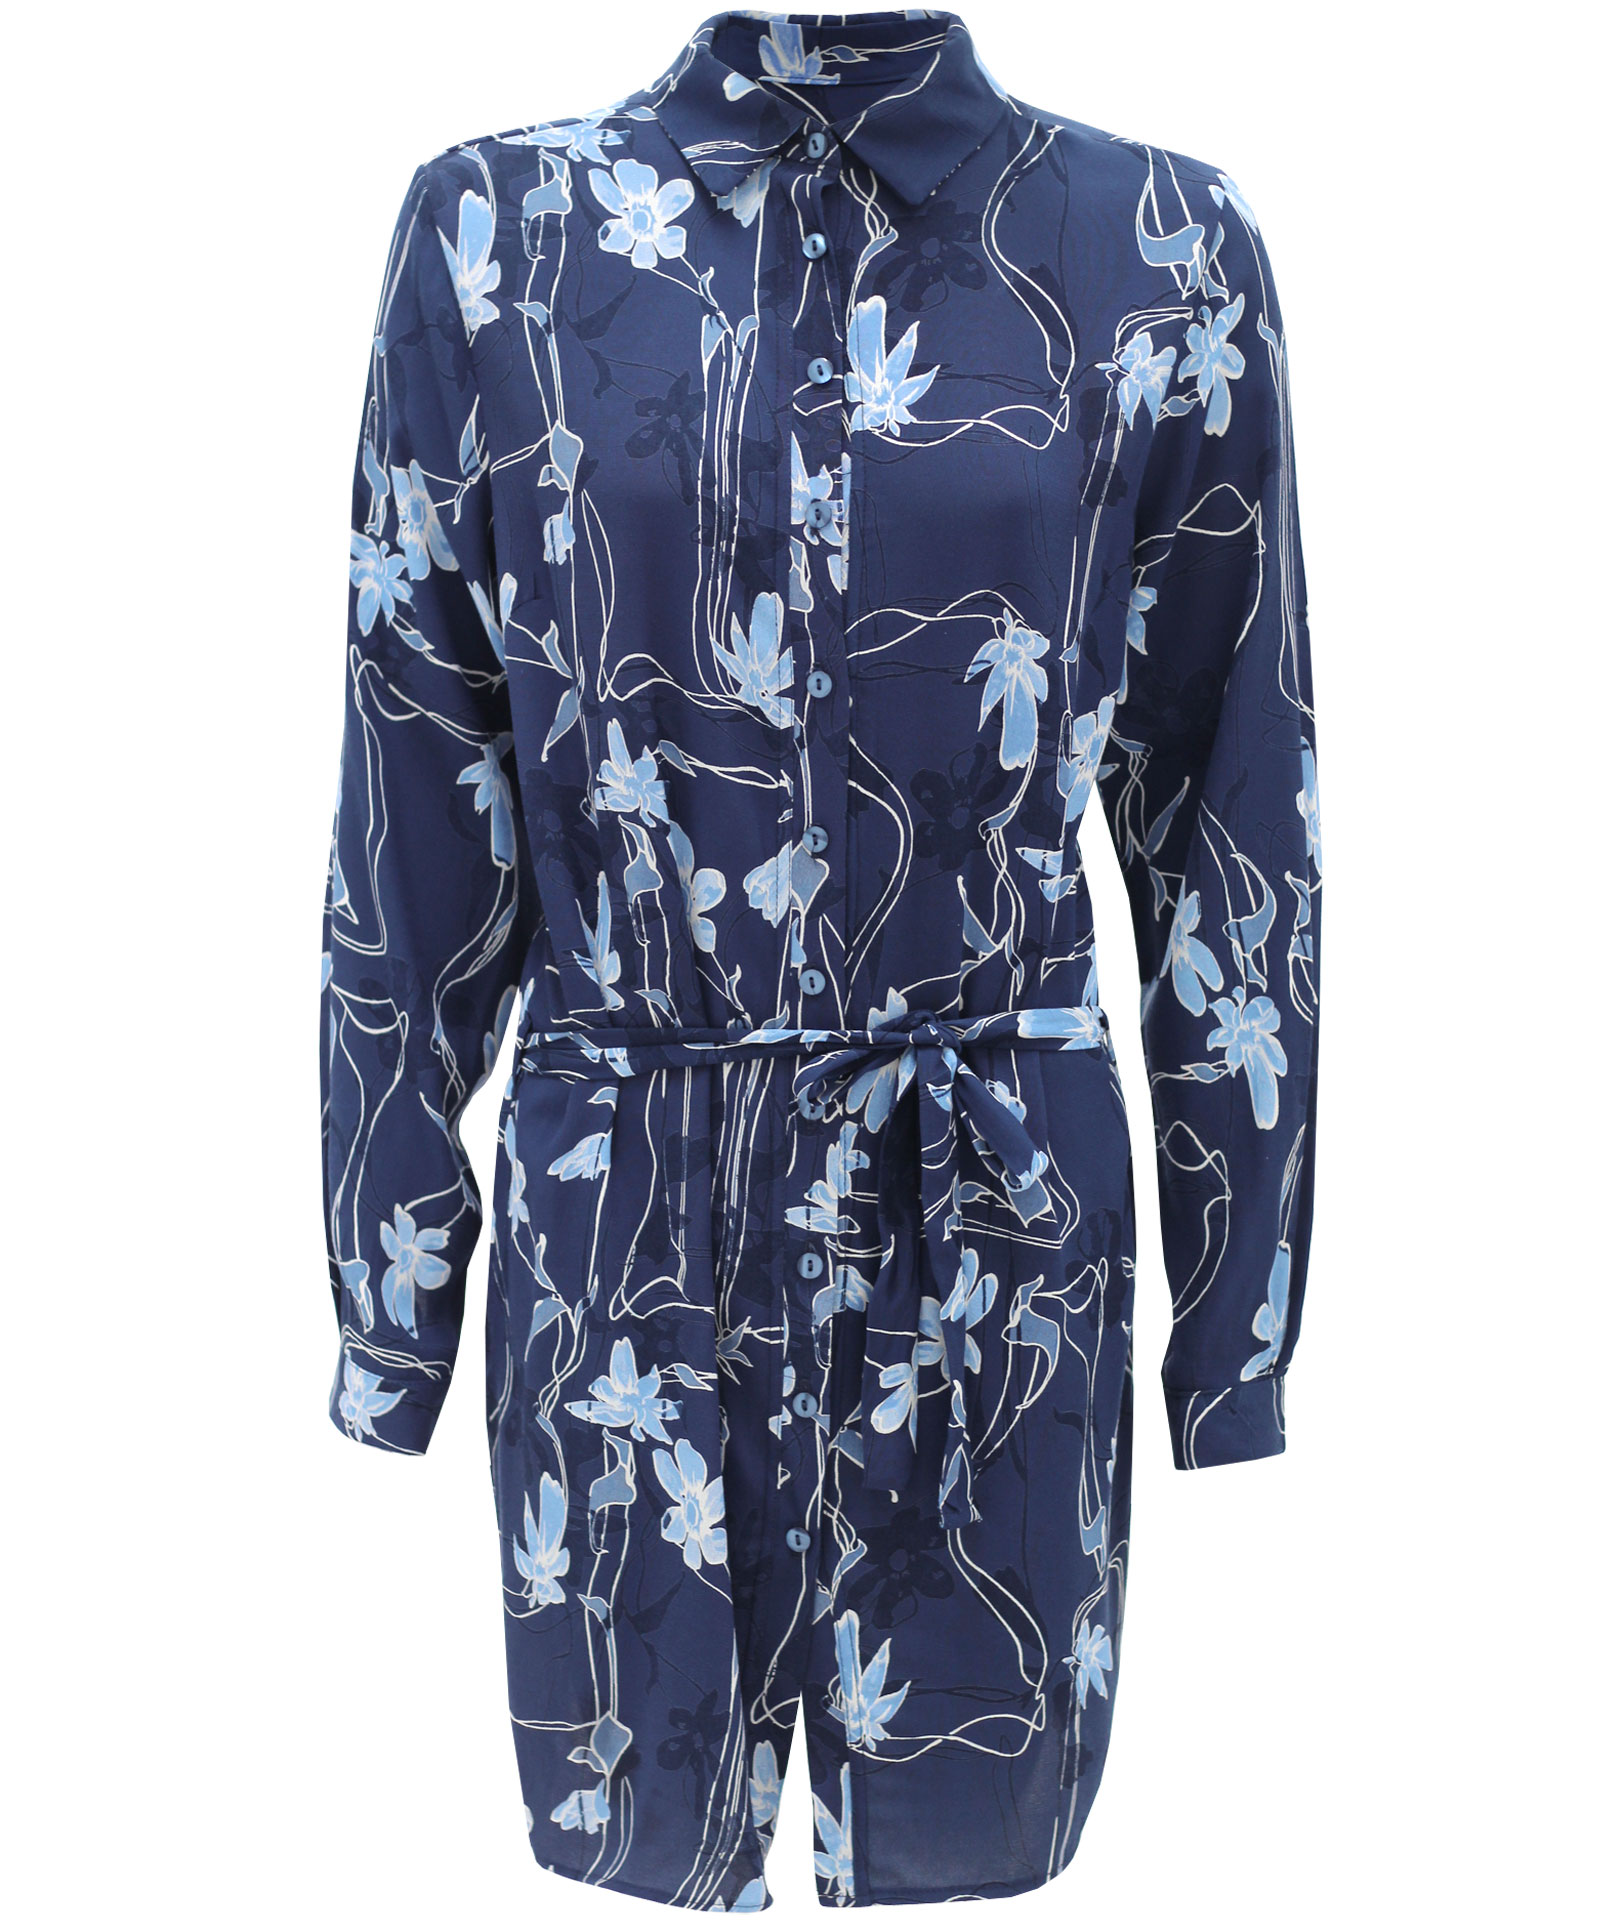 New womens ladies floral paisley print button up long for Floral print button up shirt